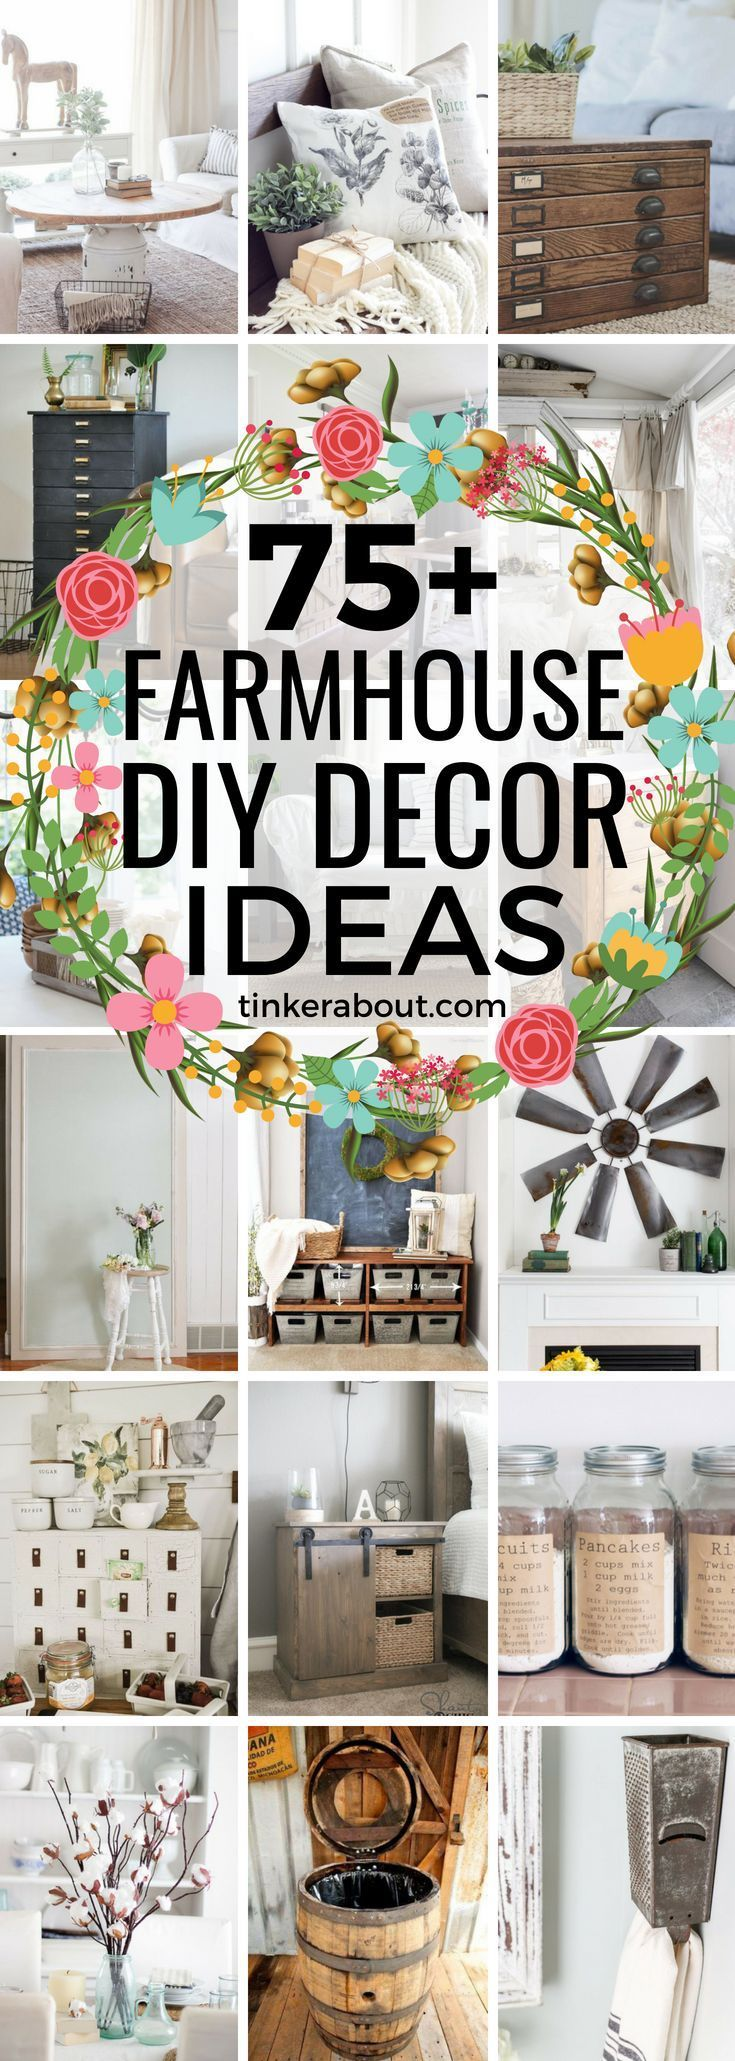 Do you love the Farmhouse Style? This post is perfect for you! Click through to find 75+ DIY Farmhouse Decor Ideas! Farmhouse decor DIY, Farmhouse Decor On A Budget, Farmhouse Decor living room, farmhouse decor kitchen, farmhouse decor bathroom - #farmhouse #farmhousestyle #farmhousedecor #diyhomedecor #fixerupper #homedecorideas